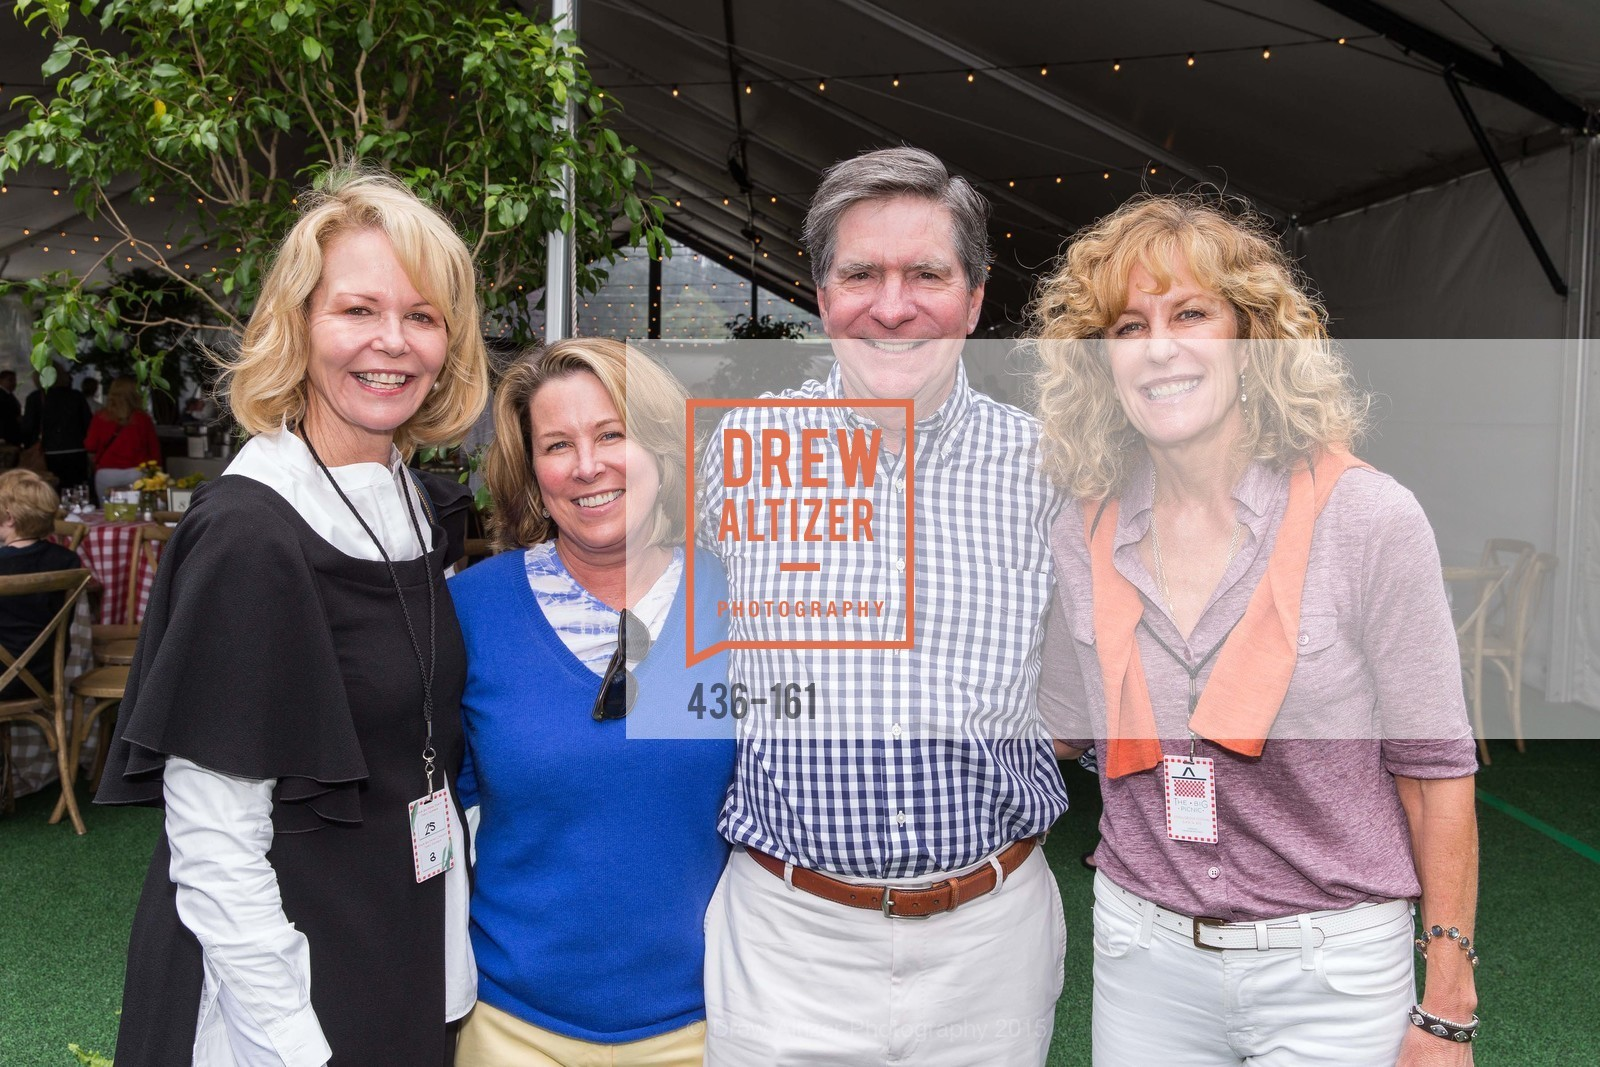 Nancy Suiter, Linda Walsh, Tom Walsh, Lisa Steiny, THE BIG PICNIC Kicking off  2015 Stern Grove Season, Stern Grove. 2750 19th Avenue, June 14th, 2015,Drew Altizer, Drew Altizer Photography, full-service agency, private events, San Francisco photographer, photographer california